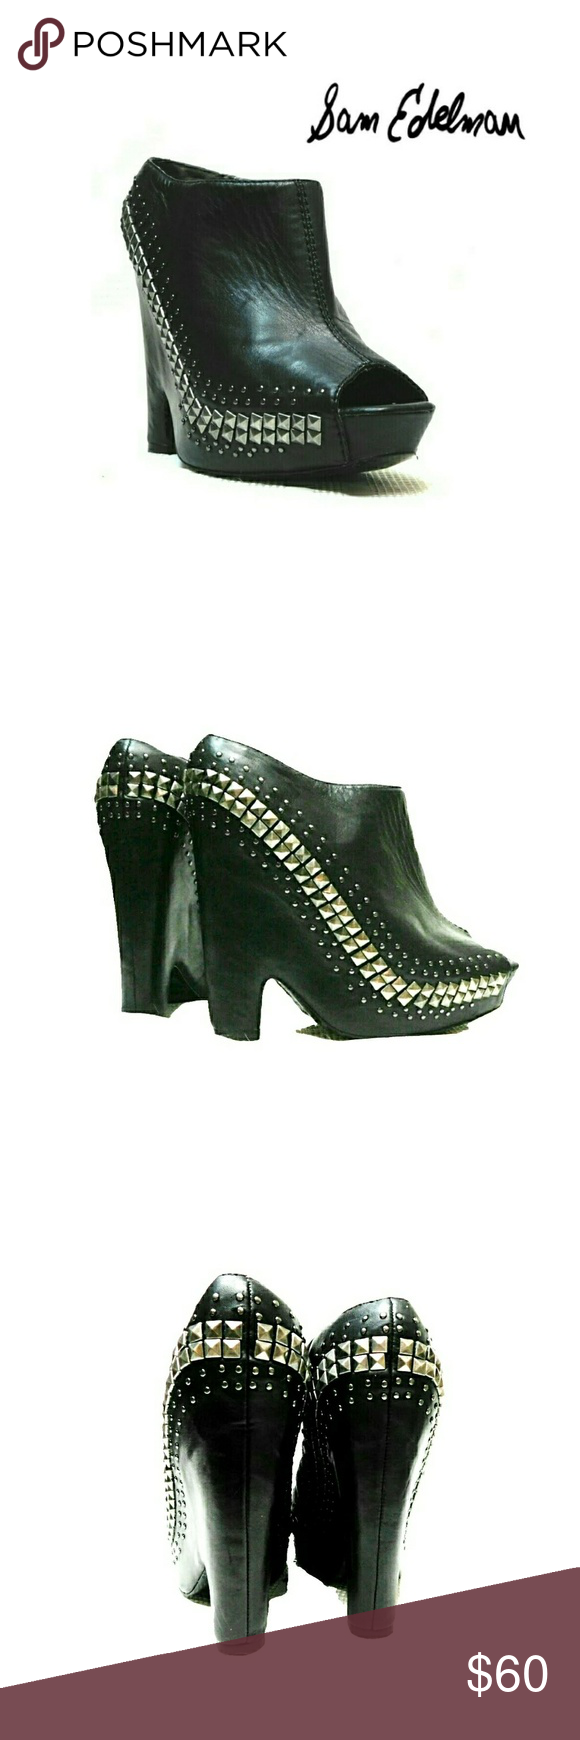 7df0f1217af SAM EDELMAN BLACK STUDDED PEEPHOLE WEDGES SAM EDELMAN WOMENS BLACK SILVER  STUDDED WEDGES Pre-loved Actual Pics Sz 8 1 2 Oh What Fun!